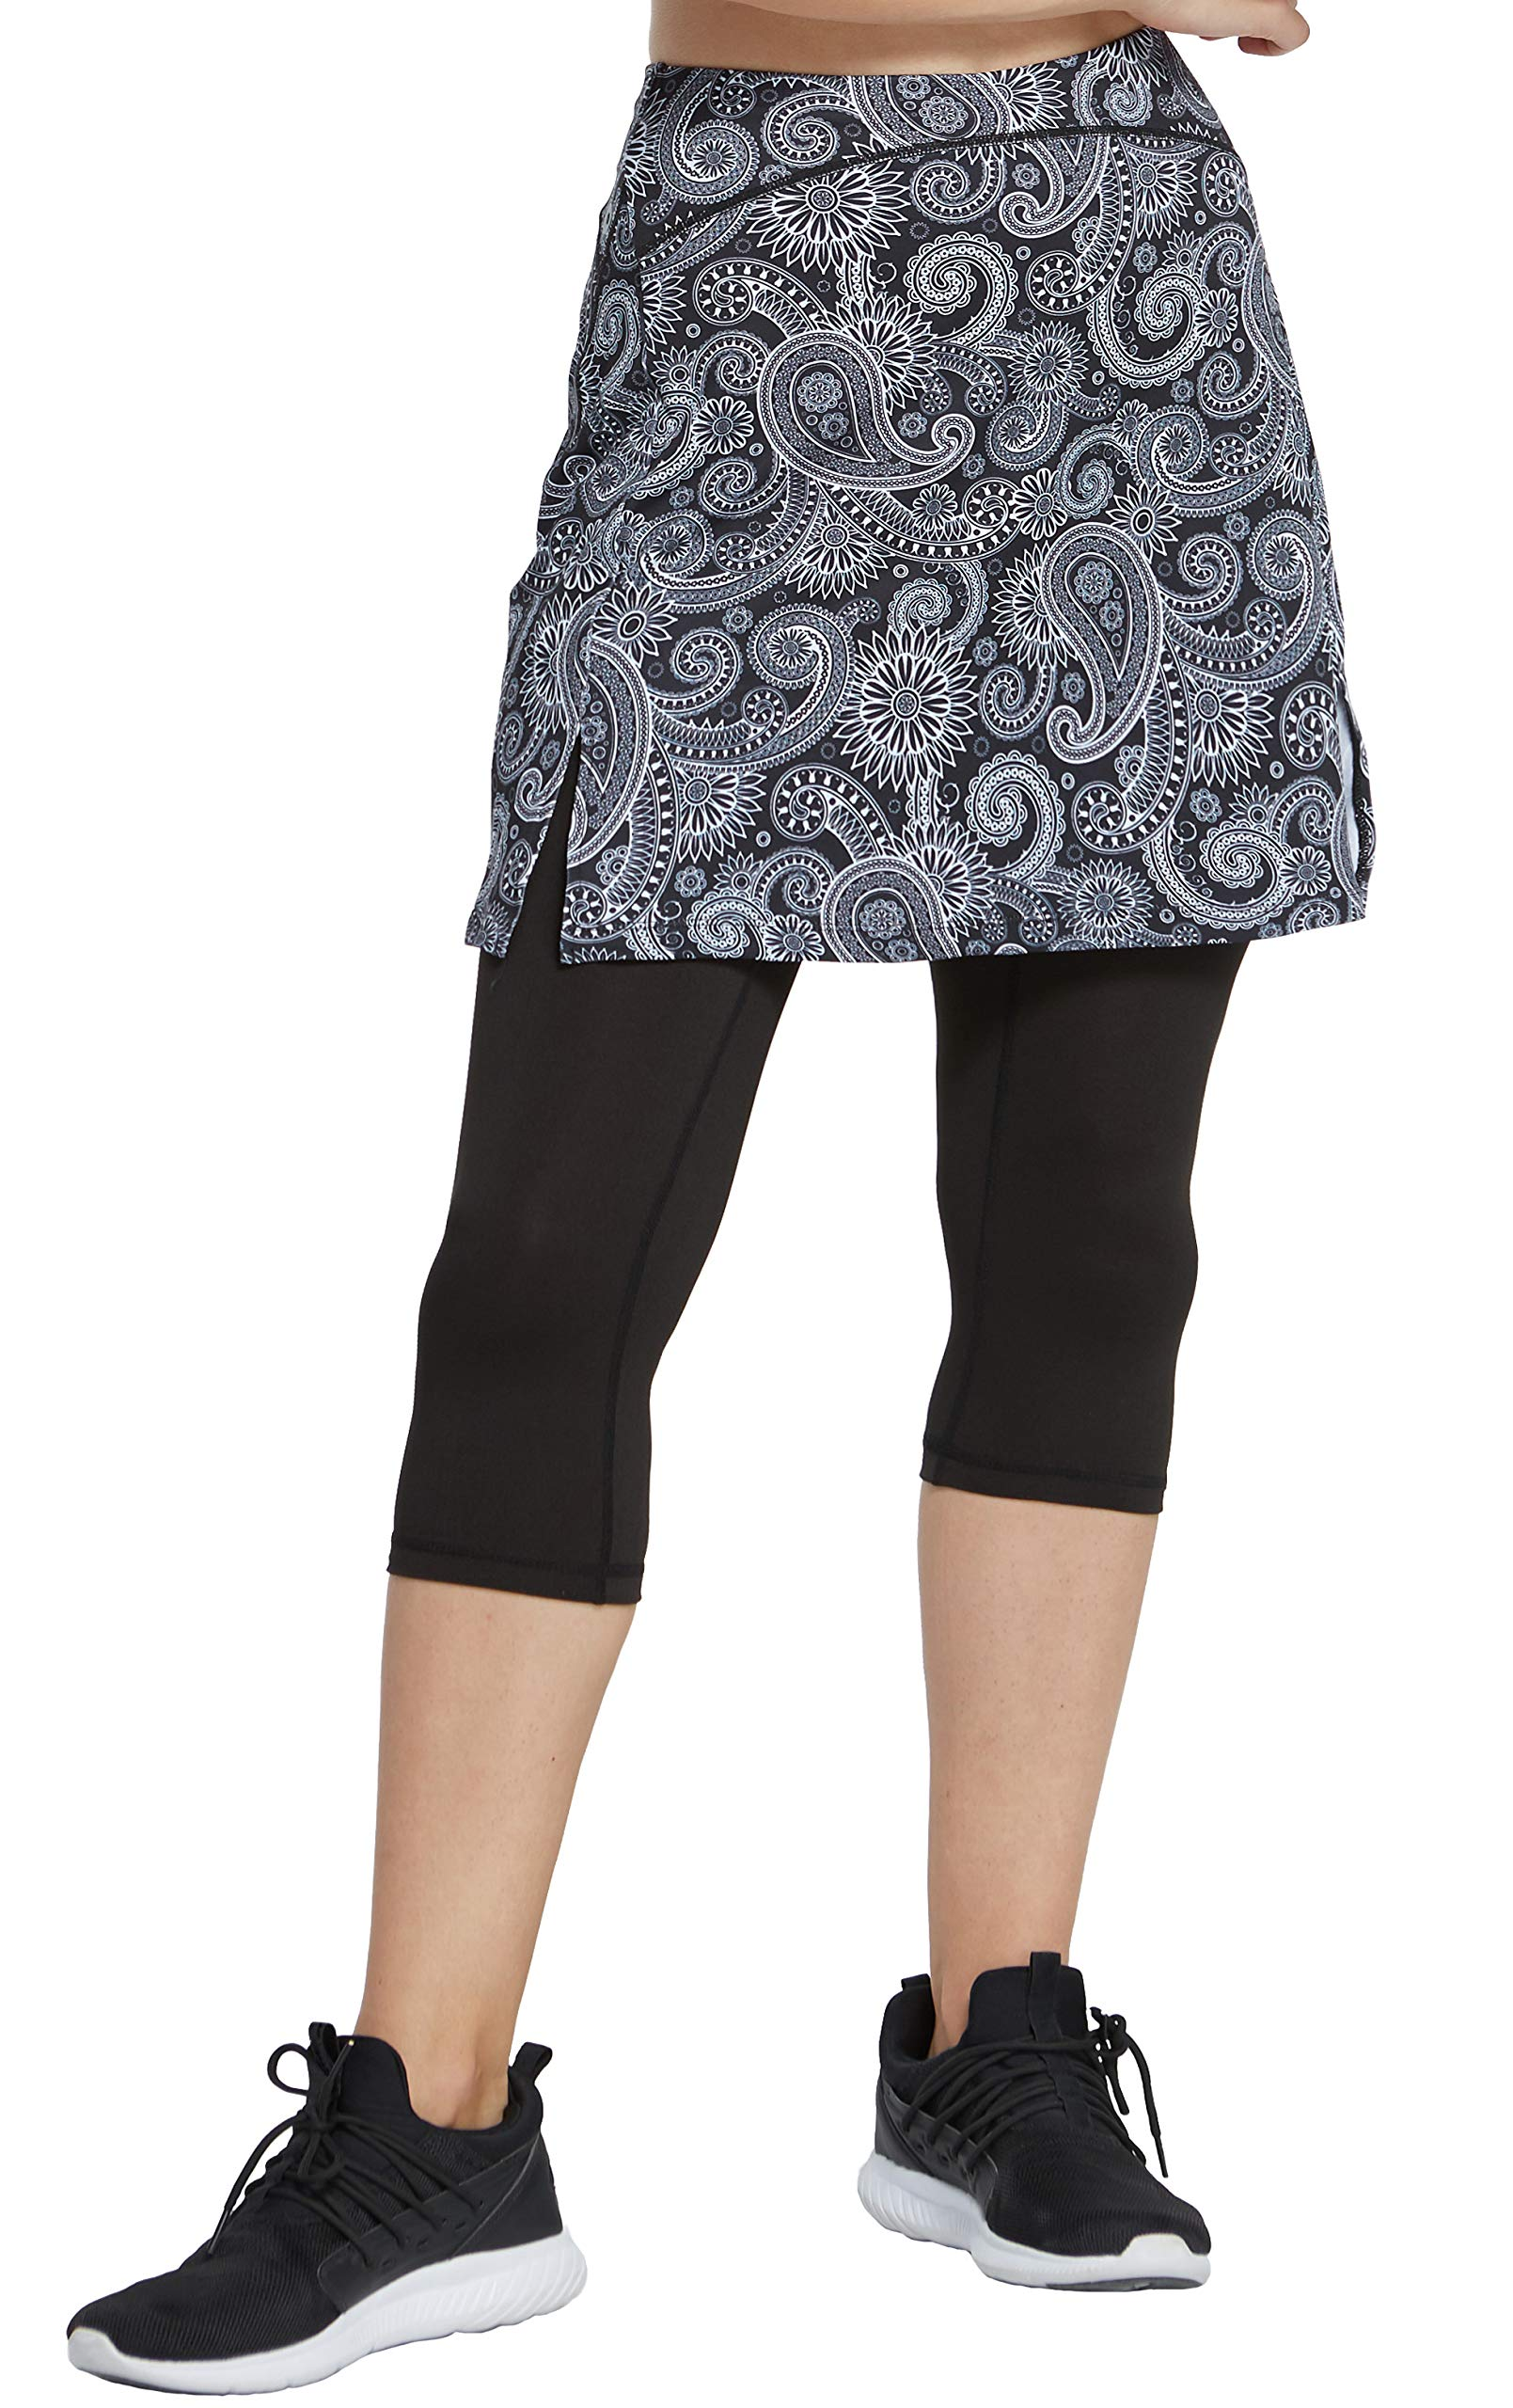 slimour Women Golf Skirt with Leggings Capri Skirt Leggings with Pockets Skirted Leggings Paisley XL by slimour